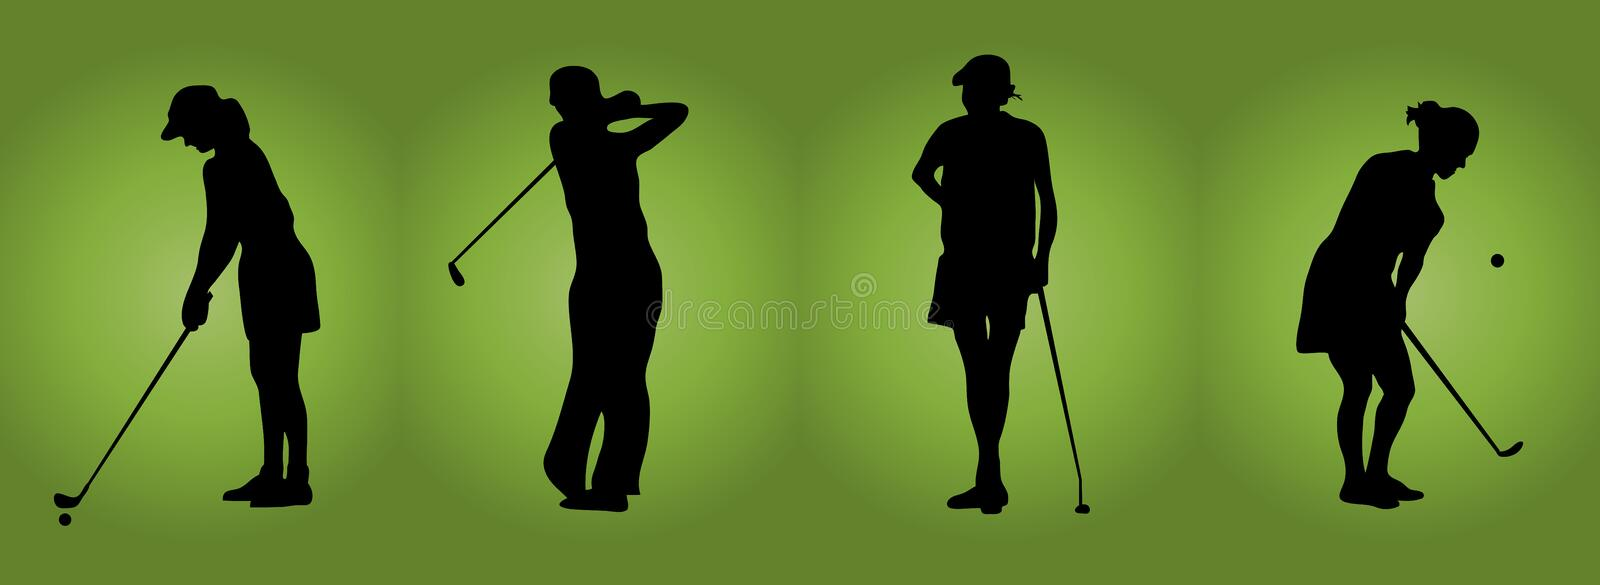 Women At Golf vector illustration